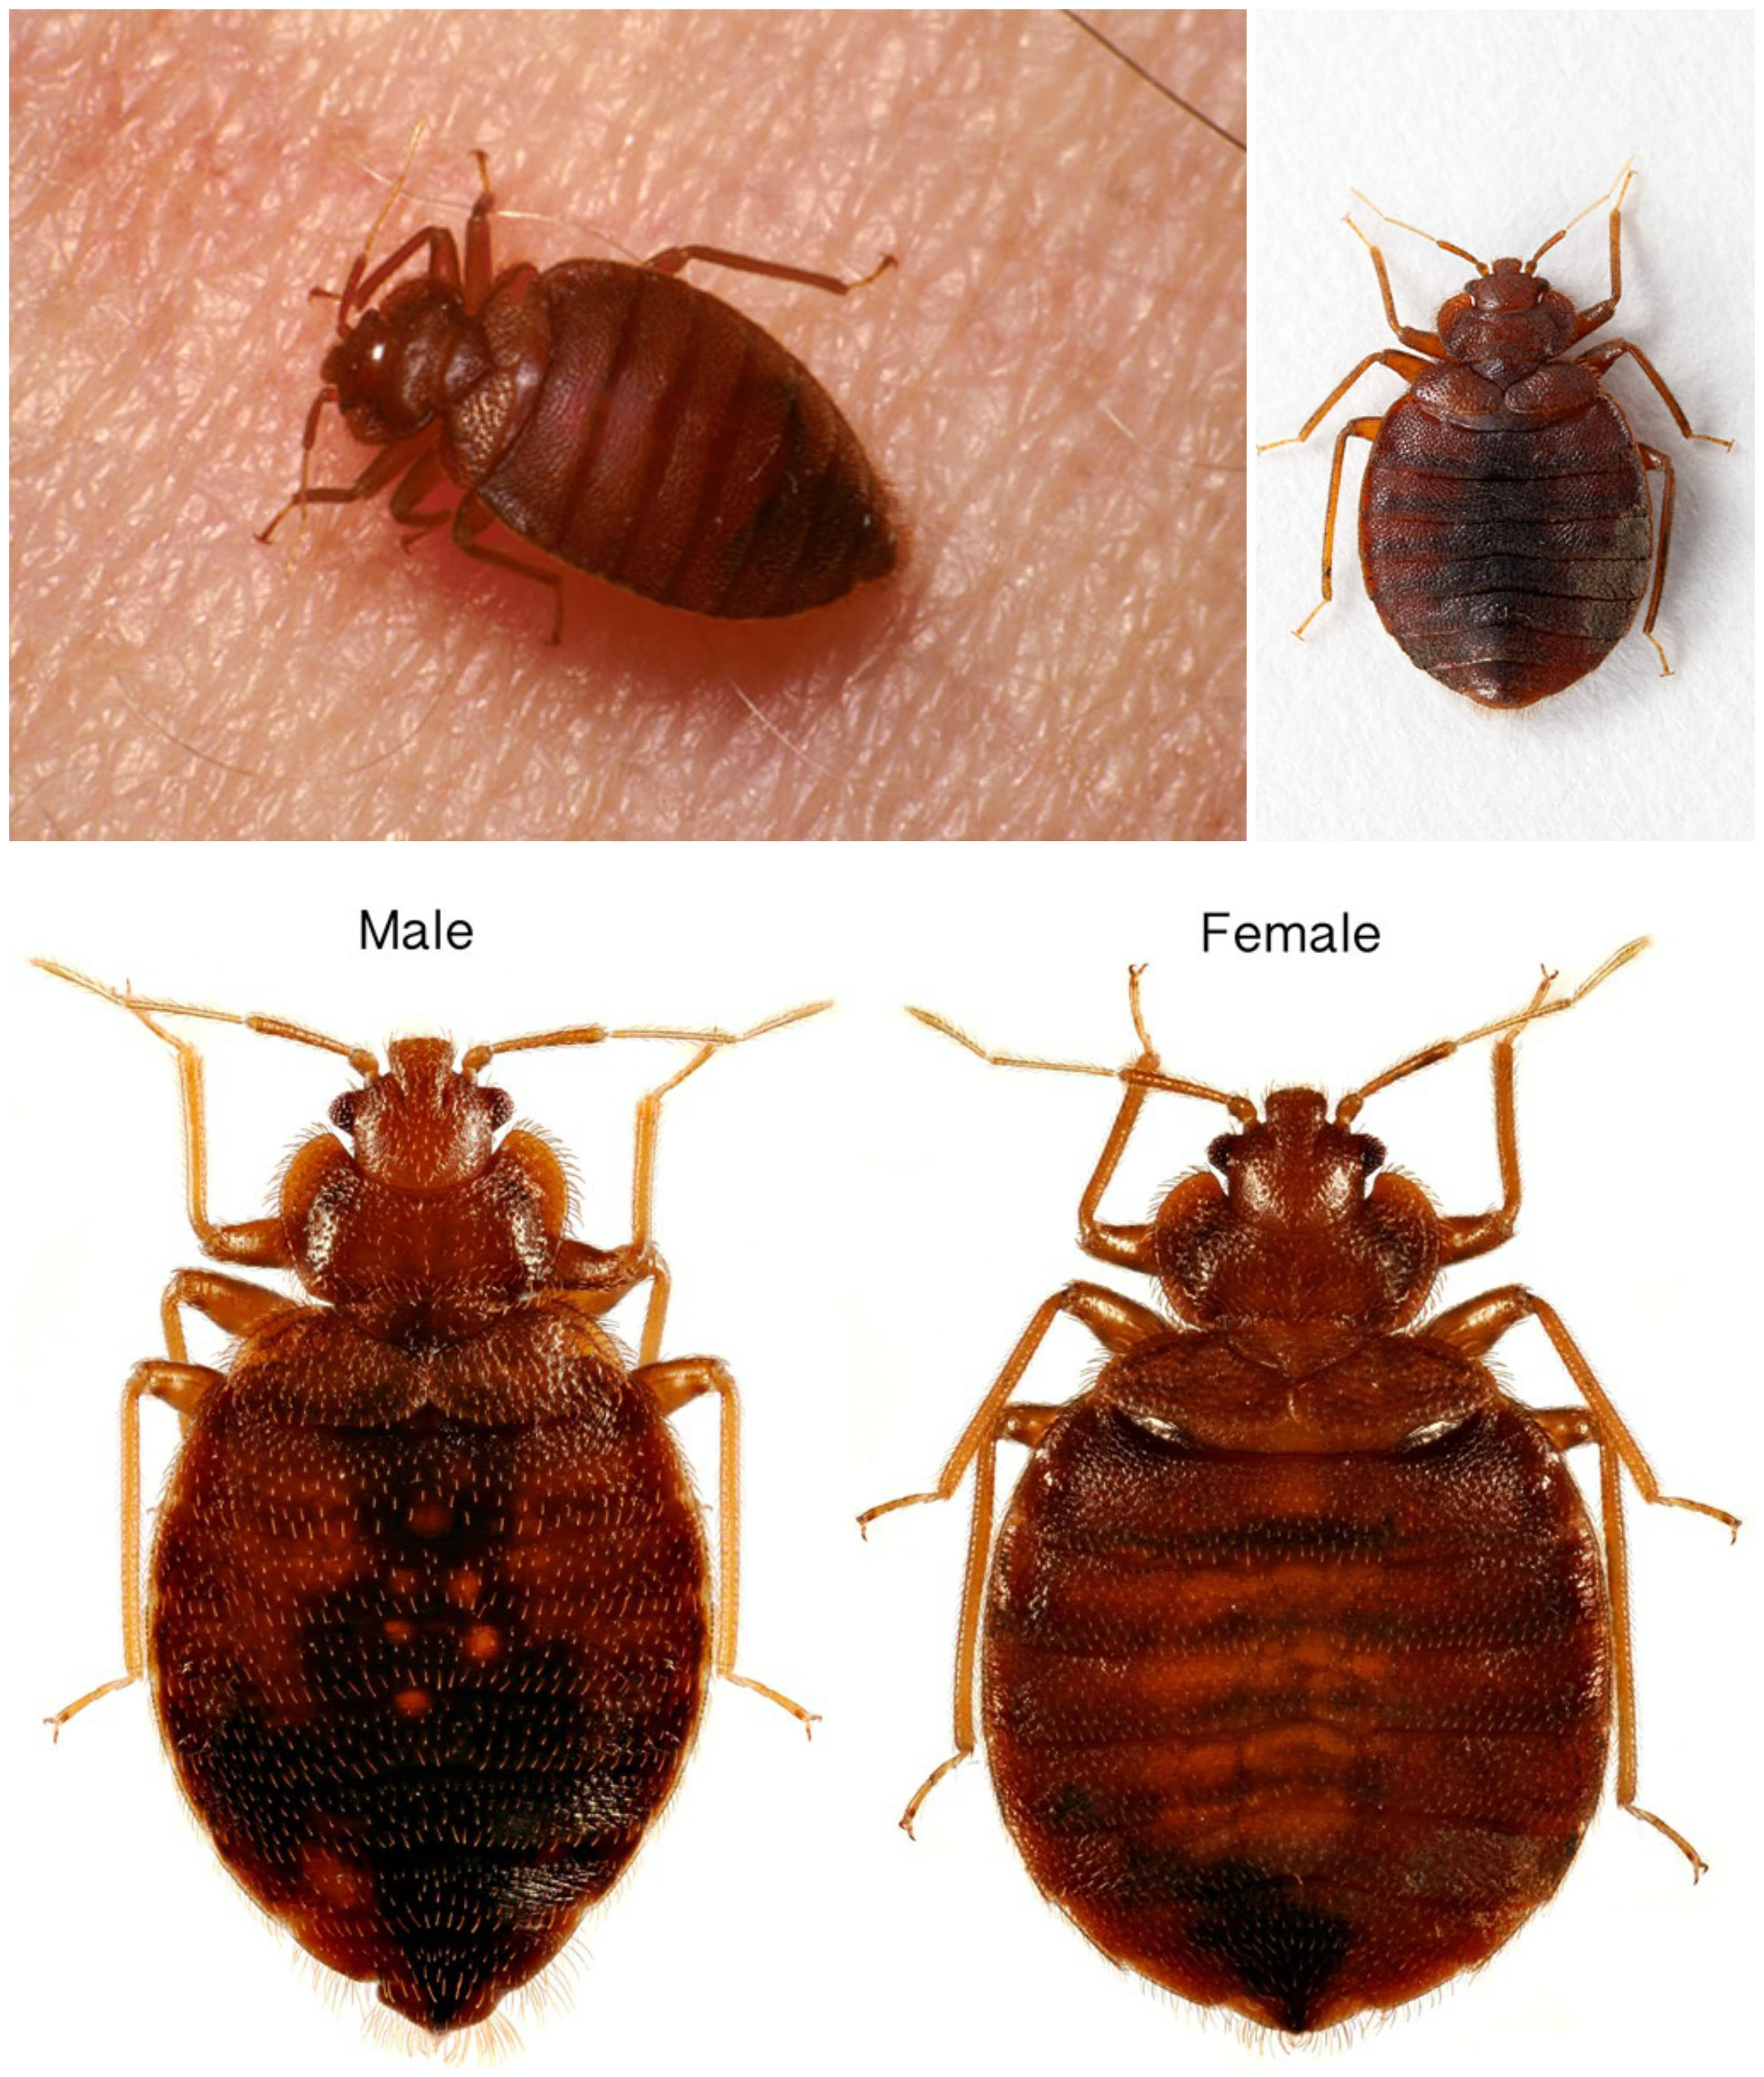 Collage of pictures of adult bedbugs, including pictures of male and female bedbugs and an adult bedbug on skin